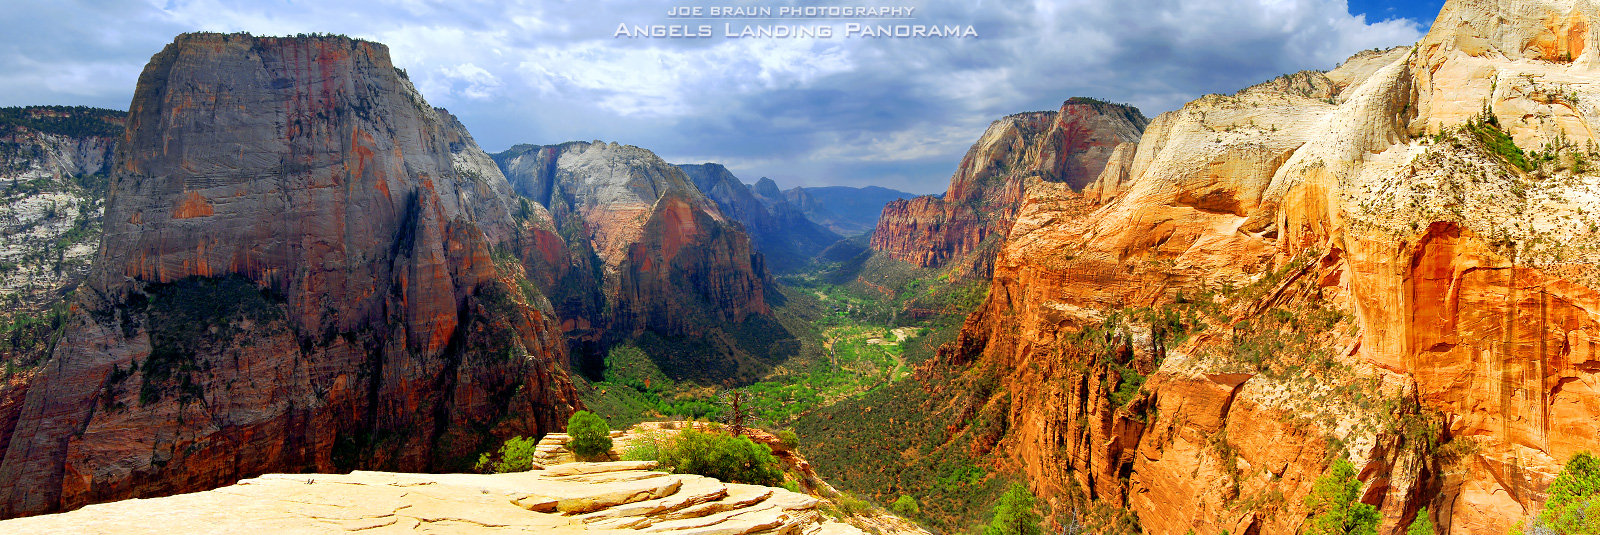 Angels Landing Panorama (Zion National Park) -- © 2007 Joe Braun Photography